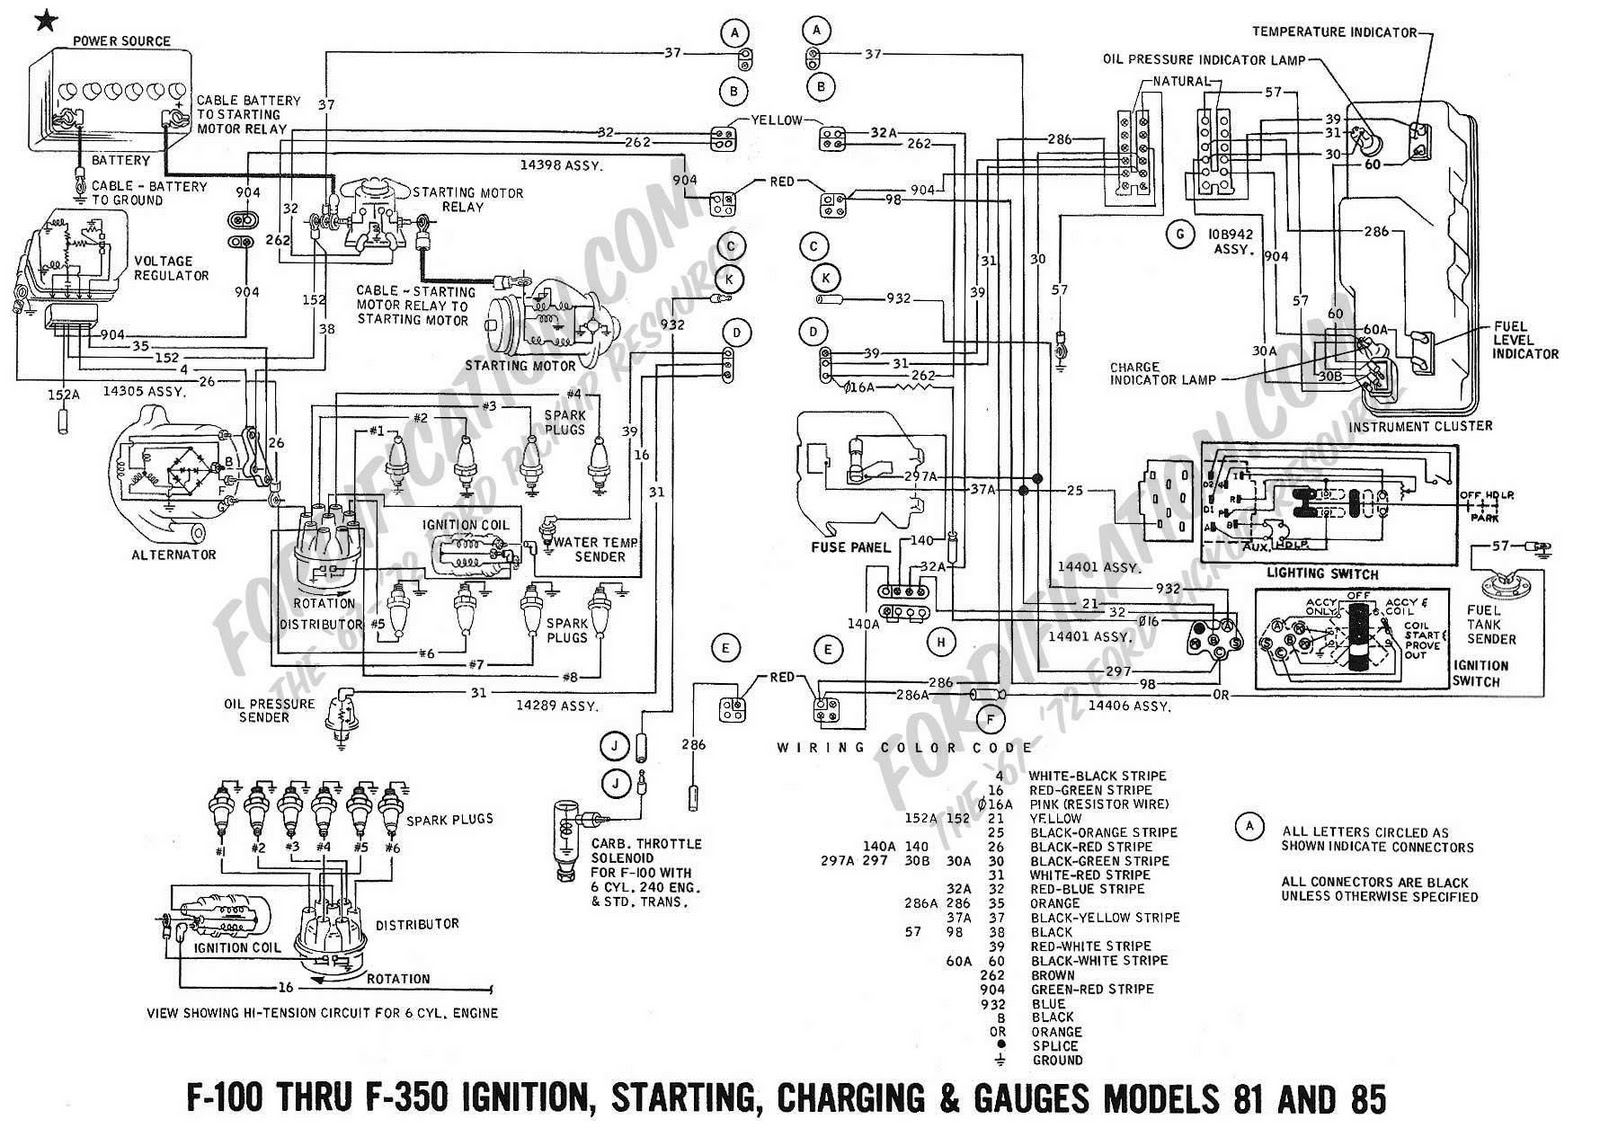 1968 Ford Mustang Ignition Wiring Archive Of Automotive 1967 Galaxie Diagram Cluster Auto Electrical Rh Semanticscholar Org Uk Edu Bitoku Me